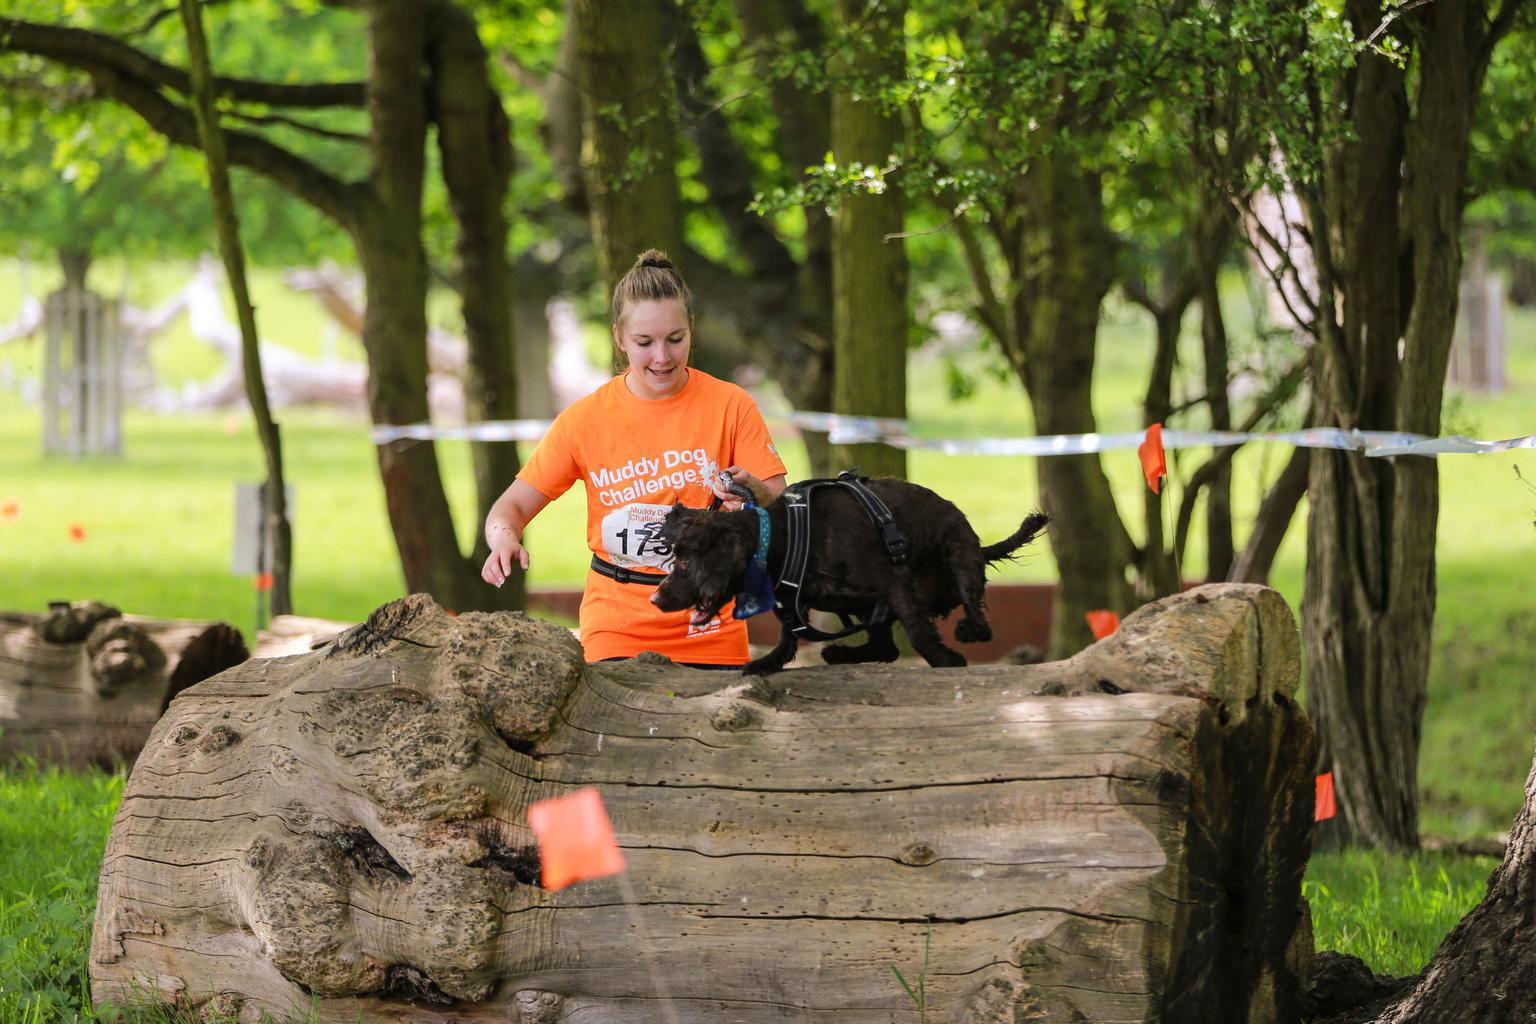 Runner and dog take on the log obstacle. Tags: Battersea Dogs & Cats Home Muddy Dog Challenge